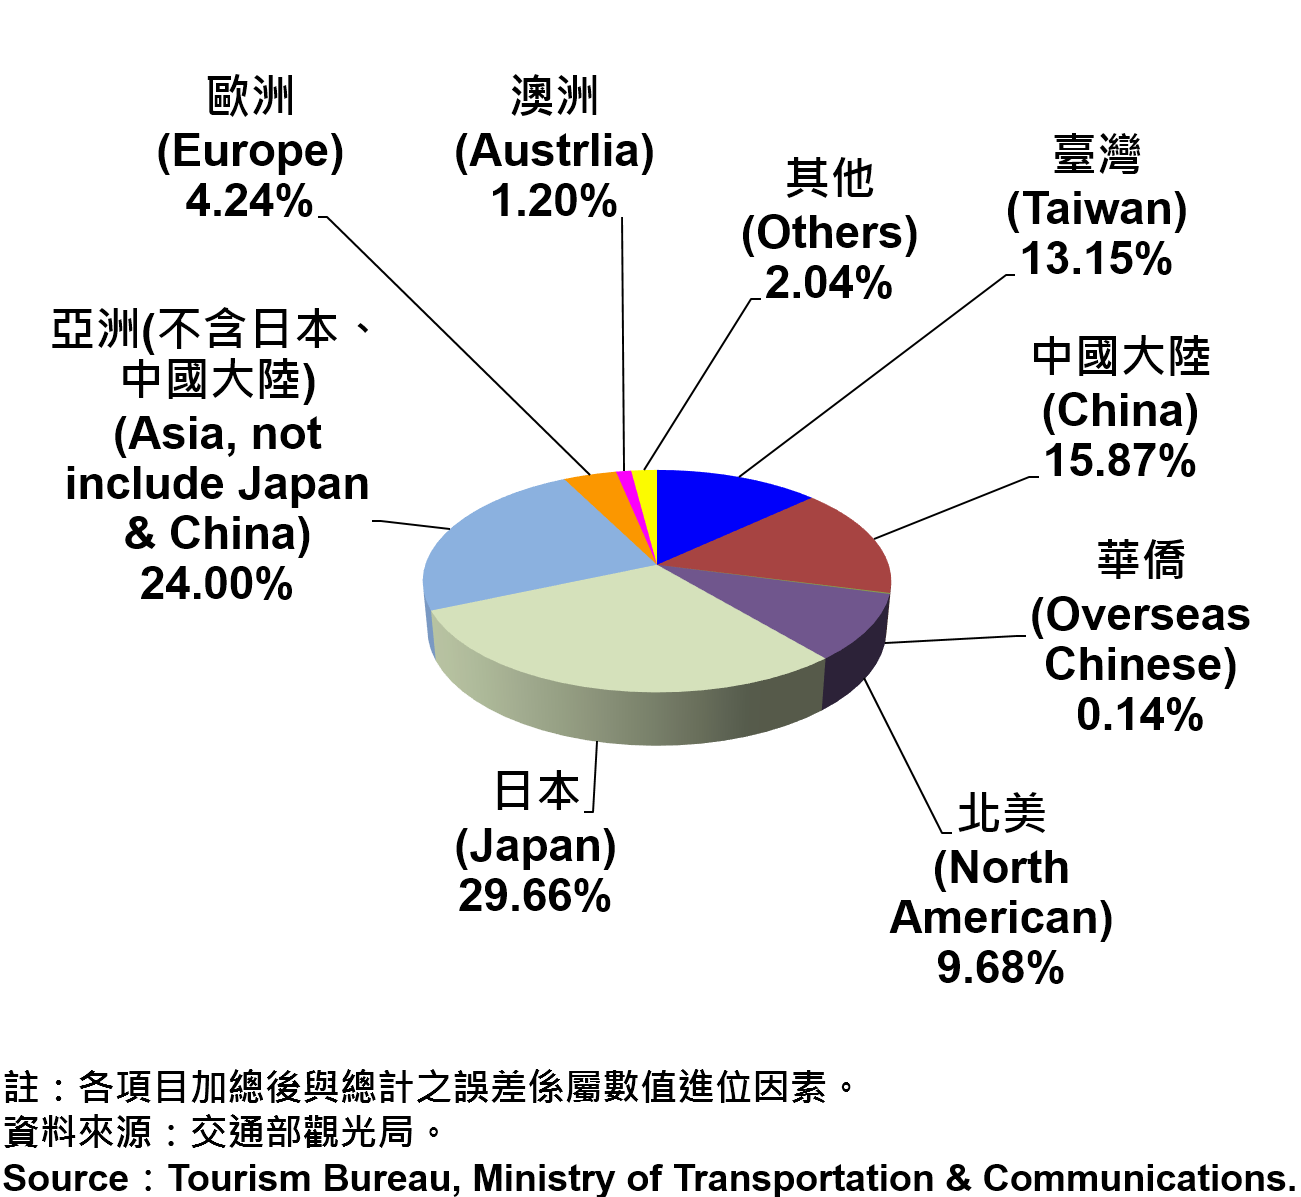 圖12、臺北市觀光旅館住客類別統計—2017Q2 Tourist Hotel Operations in Taipei City by types-—2017Q2